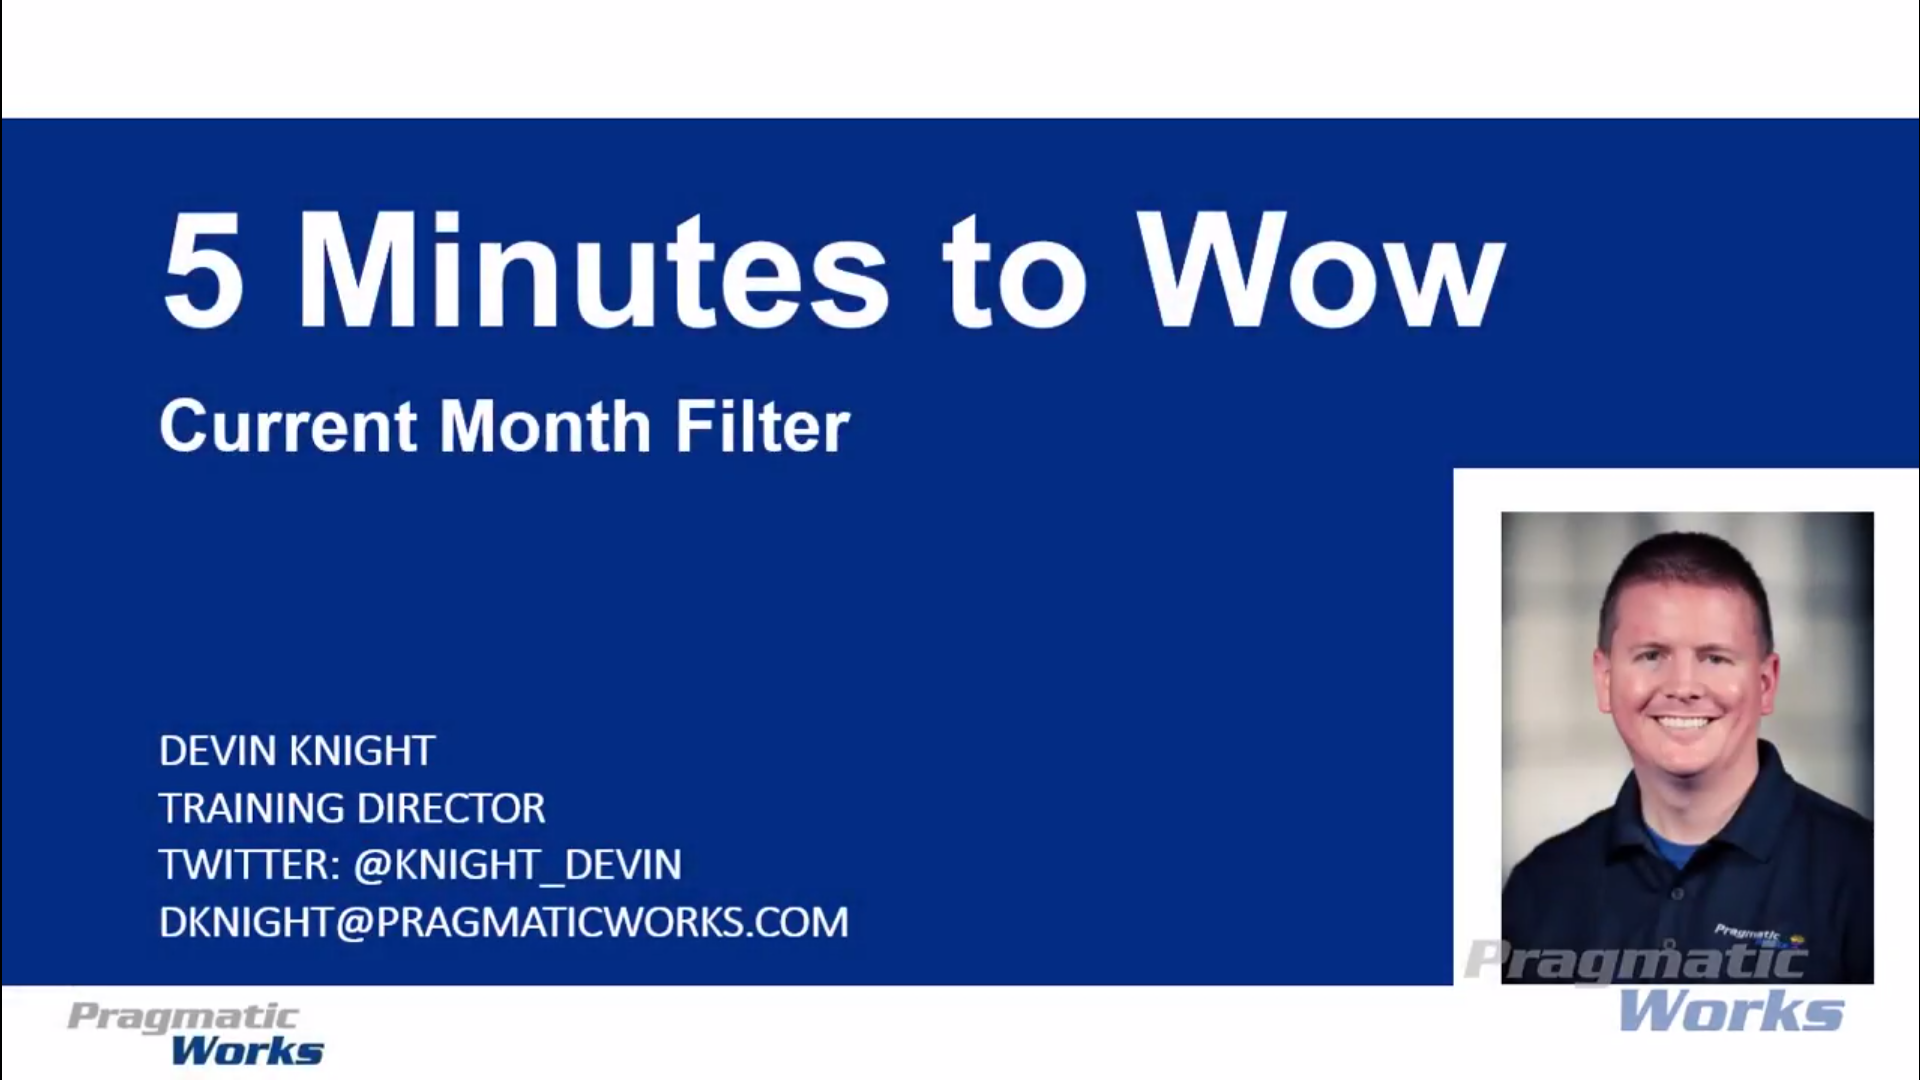 5 Minutes to Wow - Current Month Filter